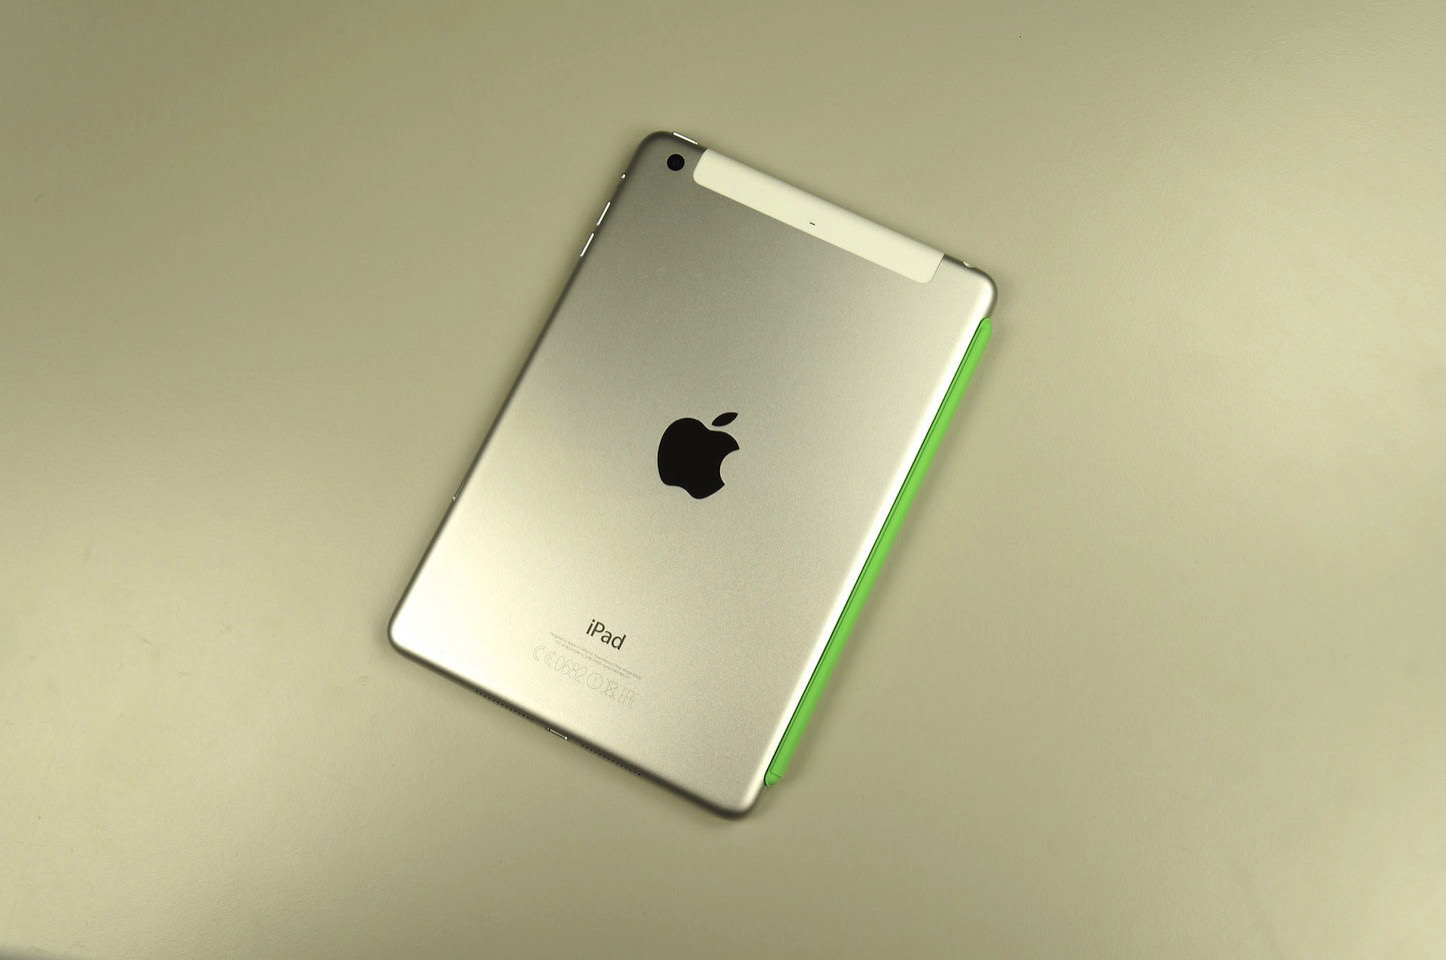 ipad-mini-4-with-case-green.jpg